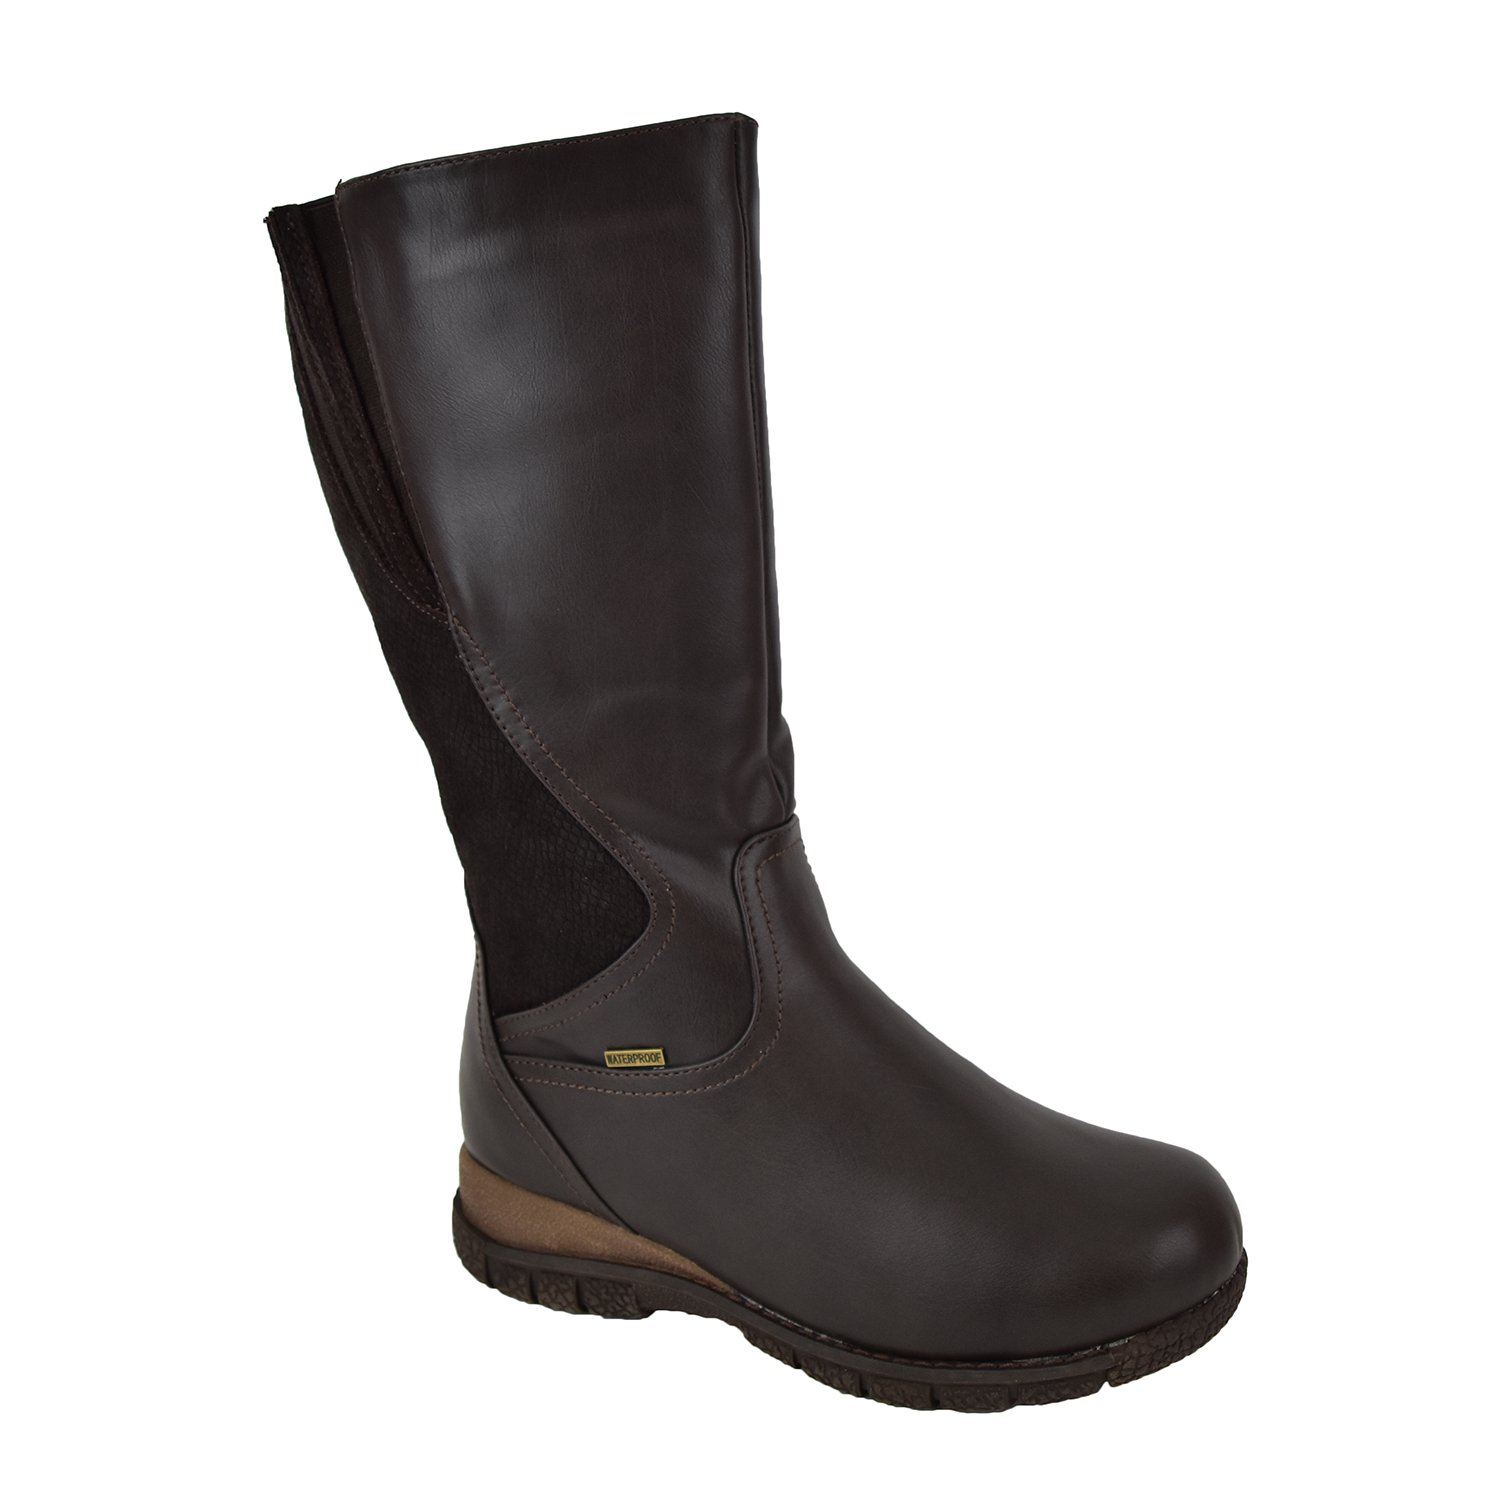 Comfy Moda Women's Winter Boots Waterproof 3M Thinsulate Wide Toe Toasty Warm Temperature Rating -25°F/-32°C Alberta Brown